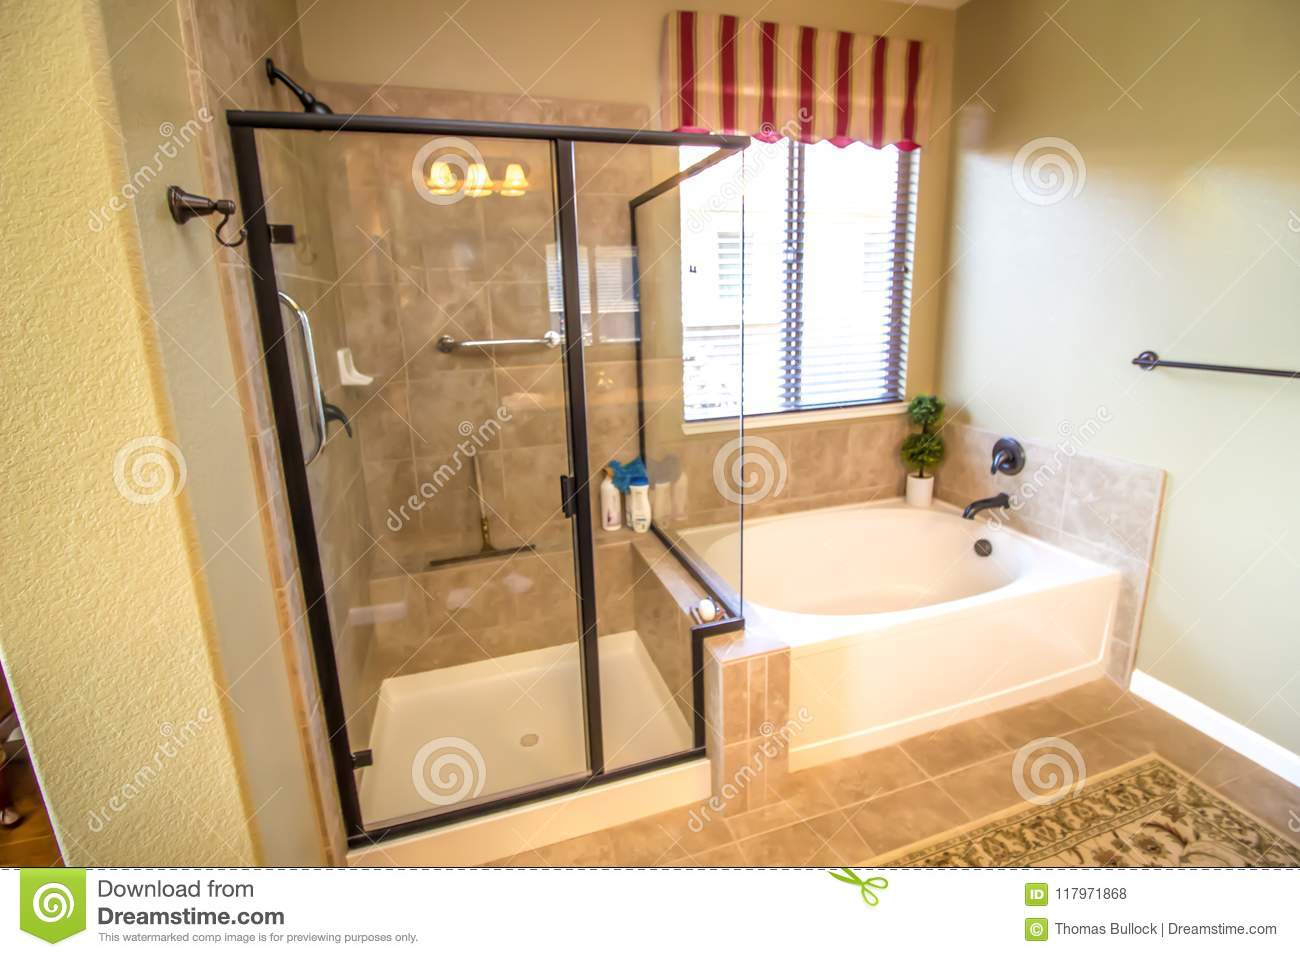 Modern Bathroom With Shower And Tub Stock Photo - Image of baseboard ...